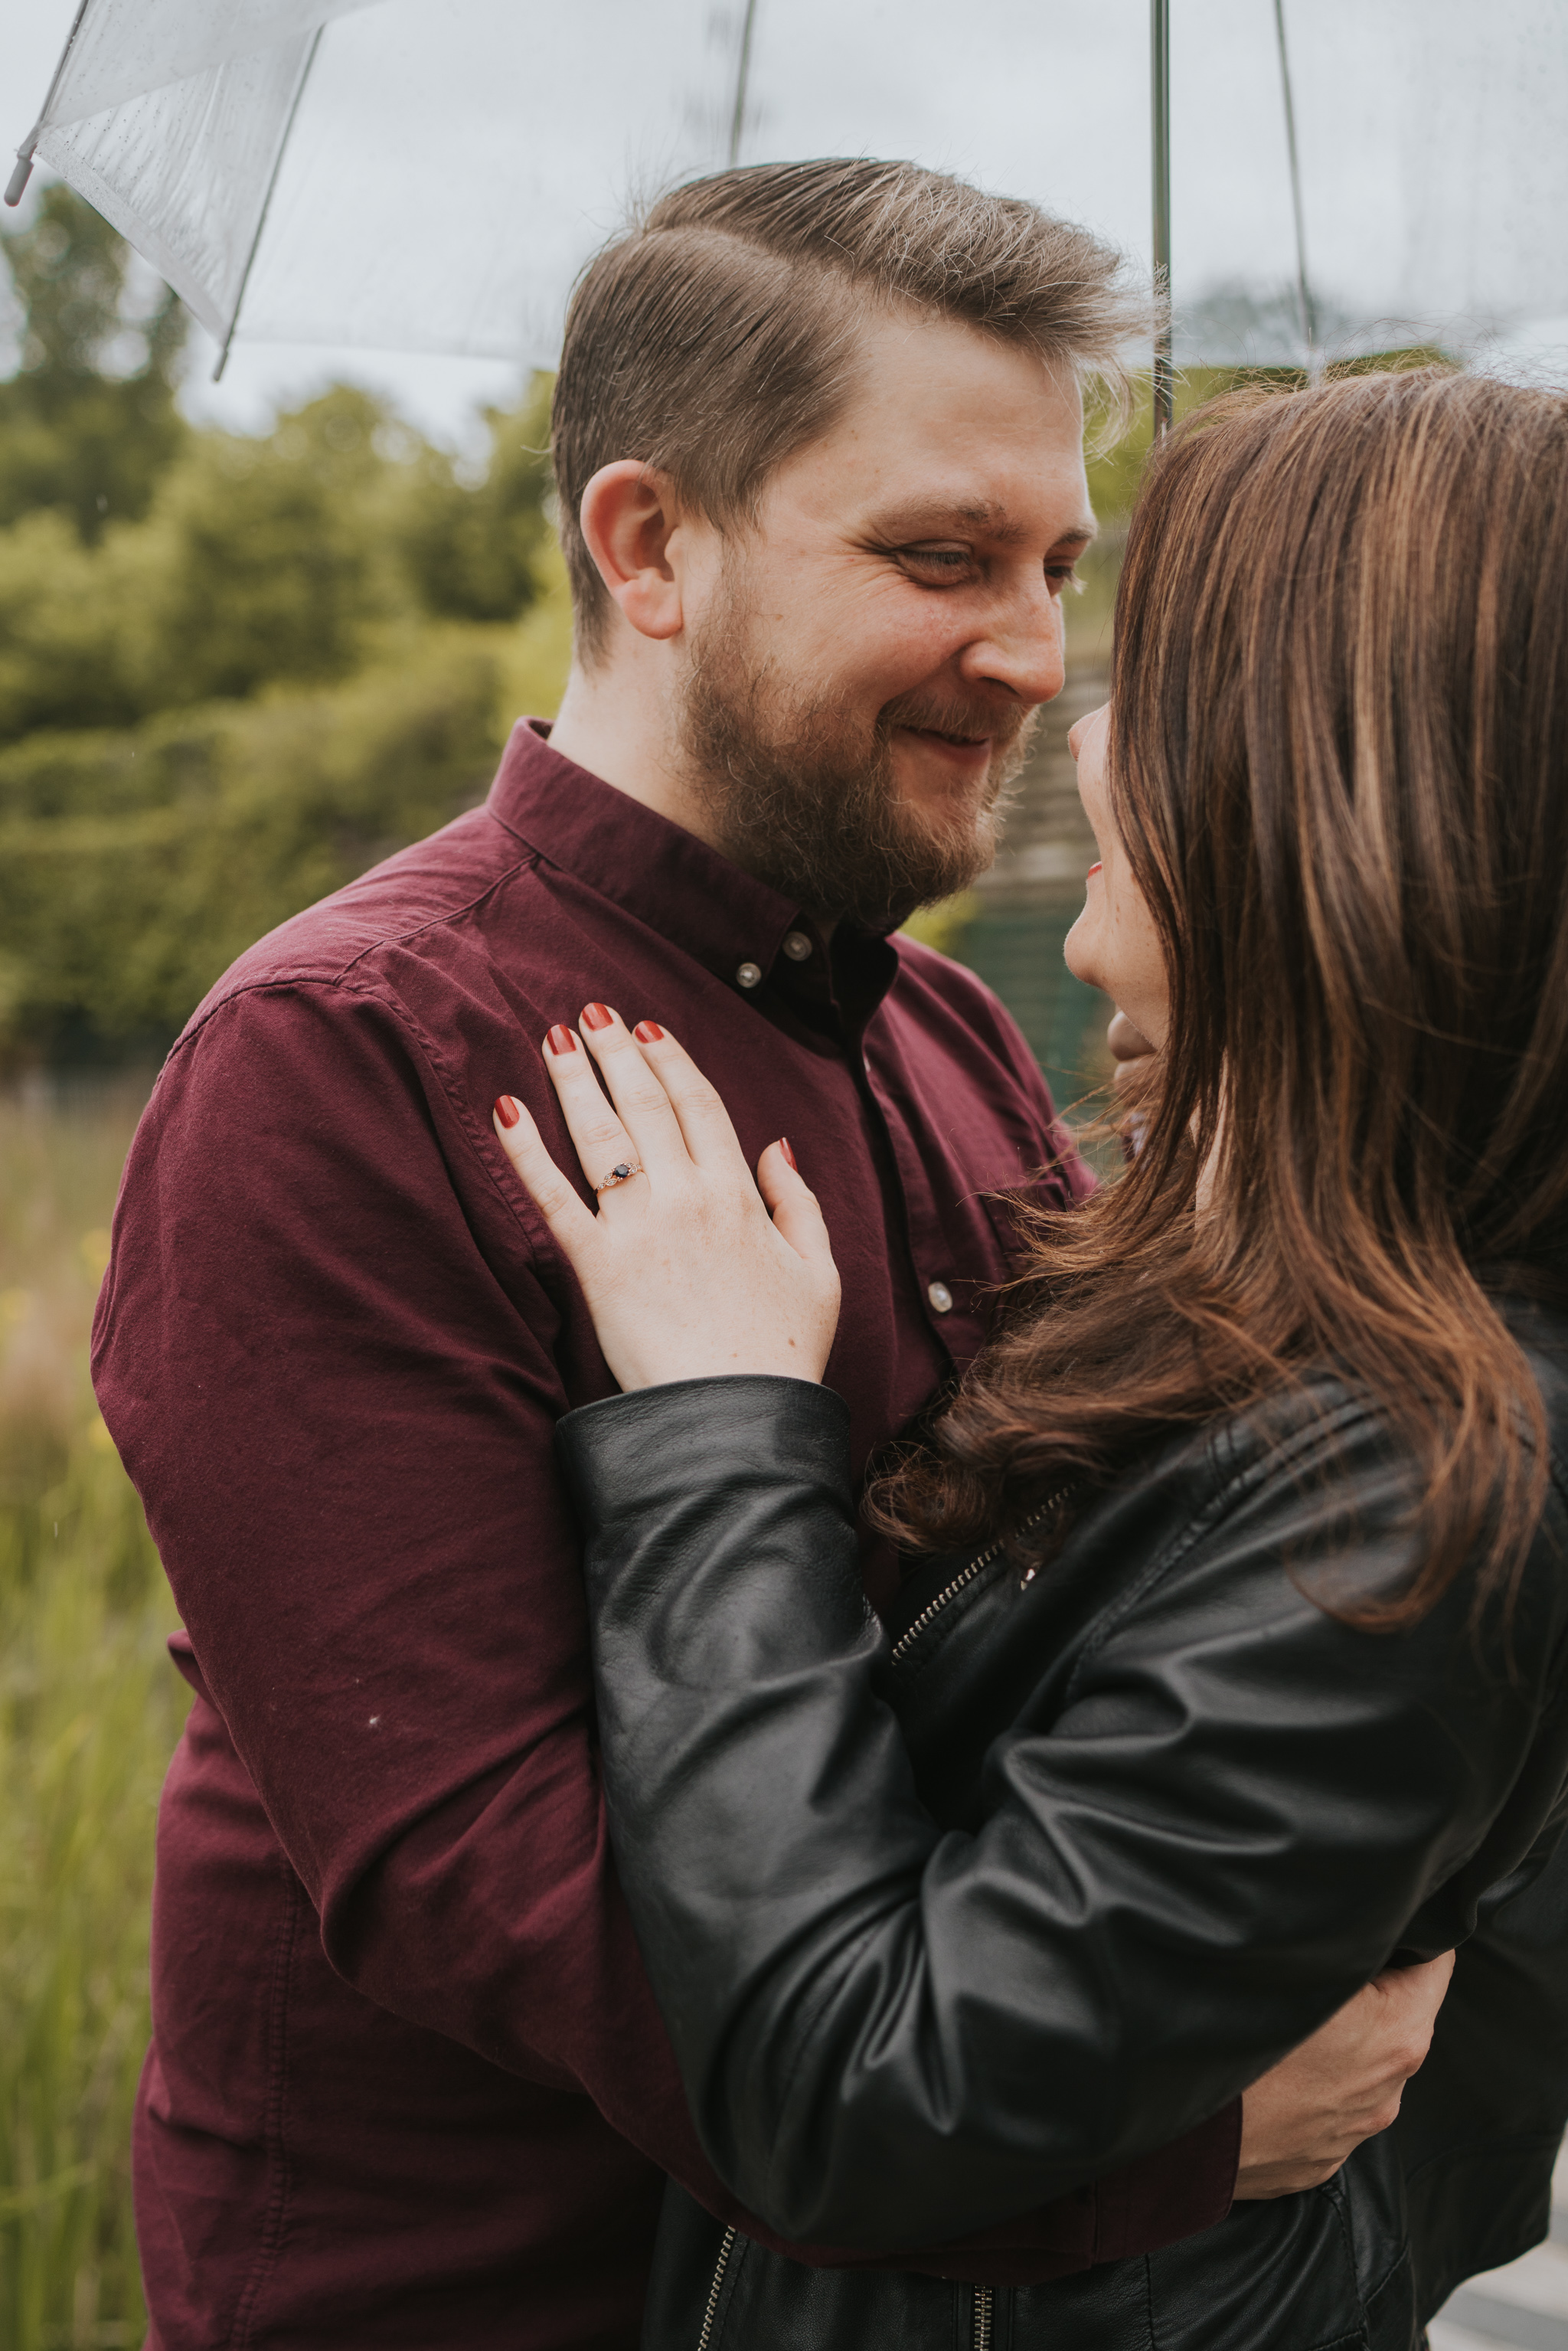 natalie-john-urban-london-engagement-grace-elizabeth-colchester-essex-alternative-wedding-photographer-essex-suffolk-norfolk-devon (28 of 66).jpg